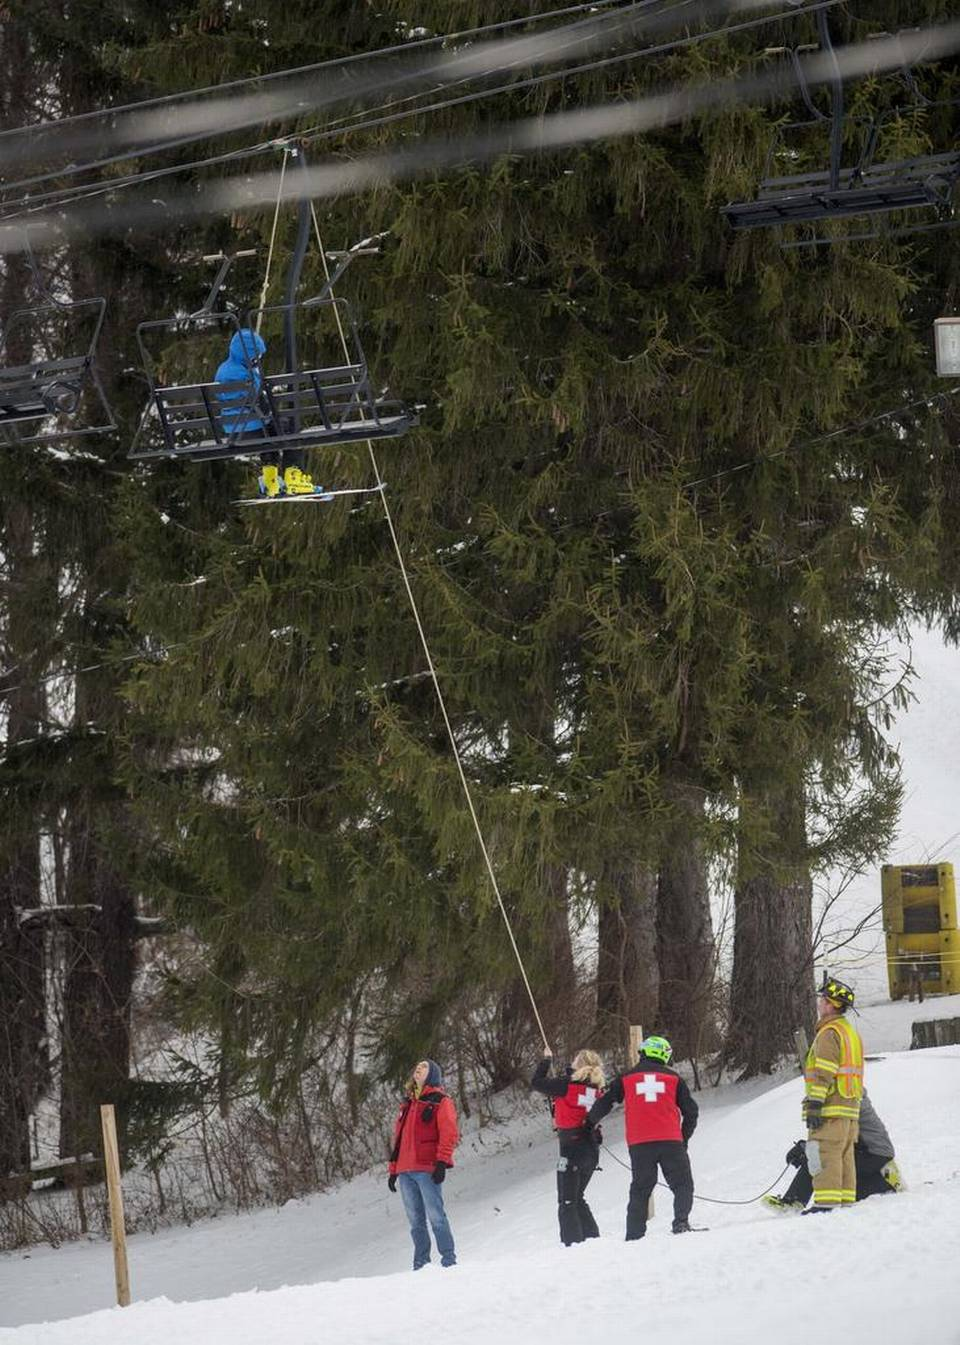 ski chair lift malfunction mechanic creeper 5 injured in tussey mountain centre daily times